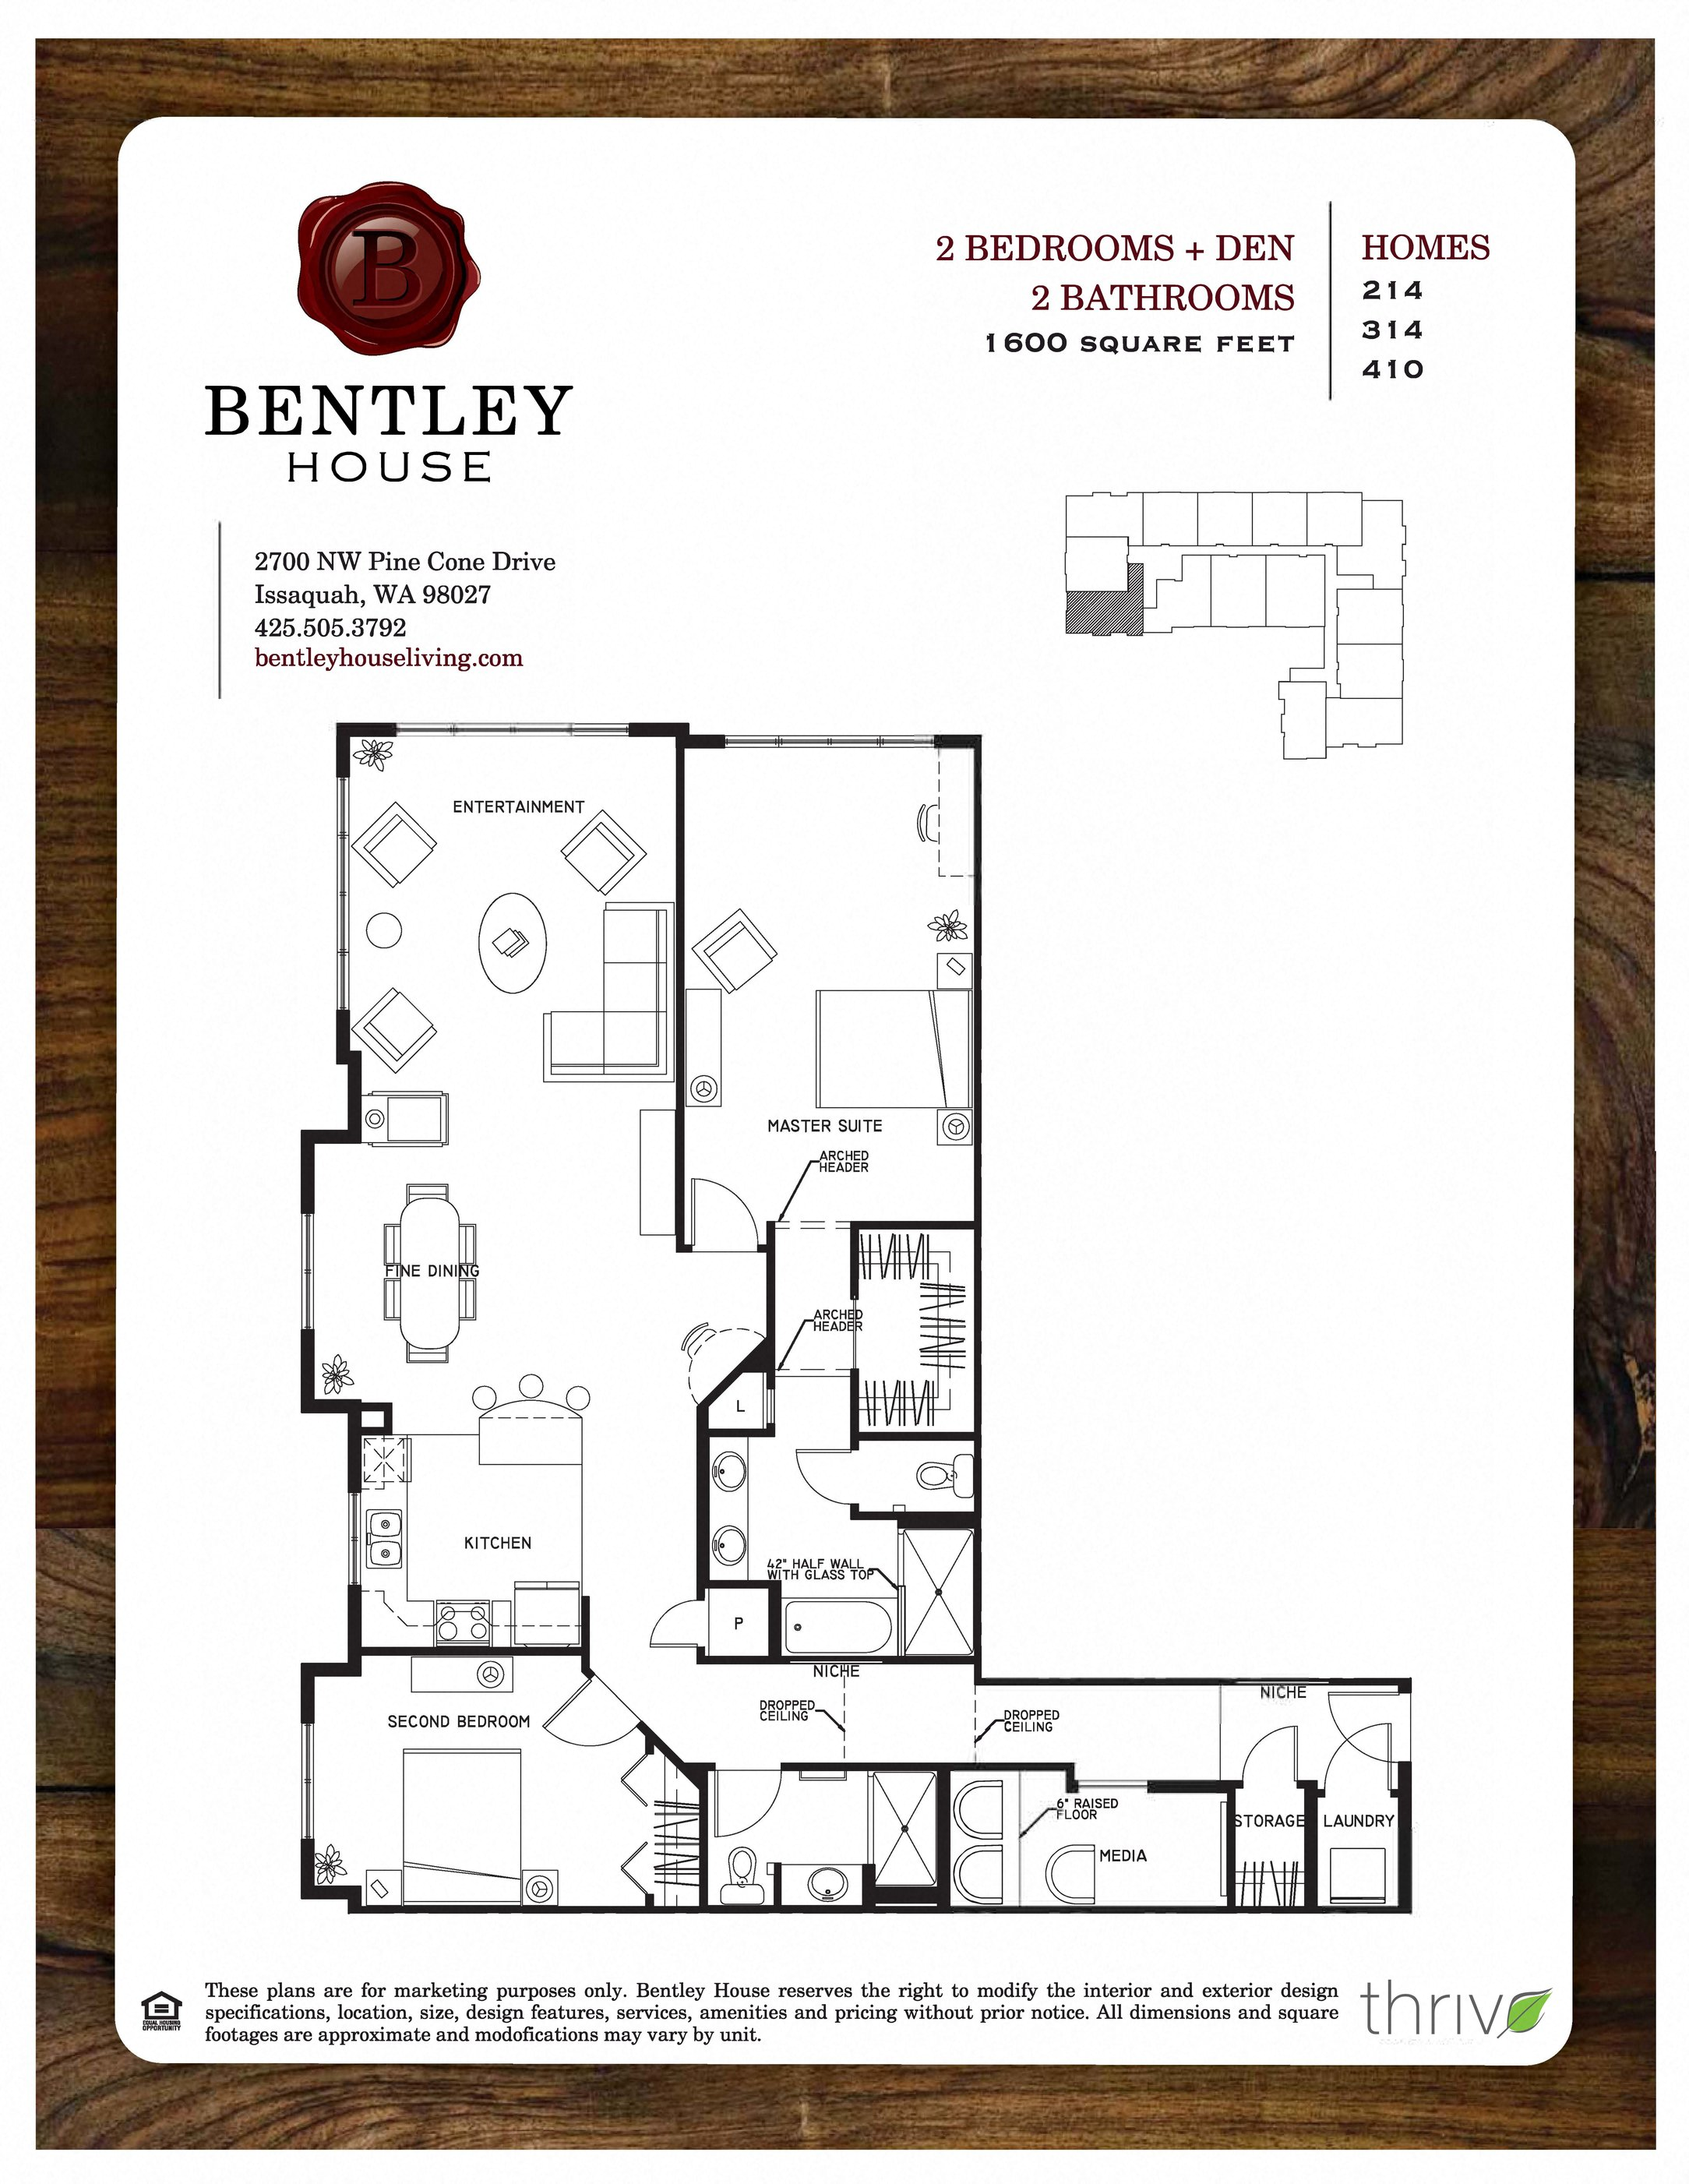 1, 2 & 3 Bedroom Apartments for Rent in Issaquah, WA Raised House Plans Sq Ft on 1600 sf house plans, 100 sq ft. house plans, 1600 sq ft country style houses, 3 beds house plans, 1600 sq ft duplex plans, 1600 sq ft basement plans, metal building house plans, 1600 sq ft ranch plans, 1600 foot house plans, 2 beds house plans, 2 bath house plans, 1600 ft floor plans,